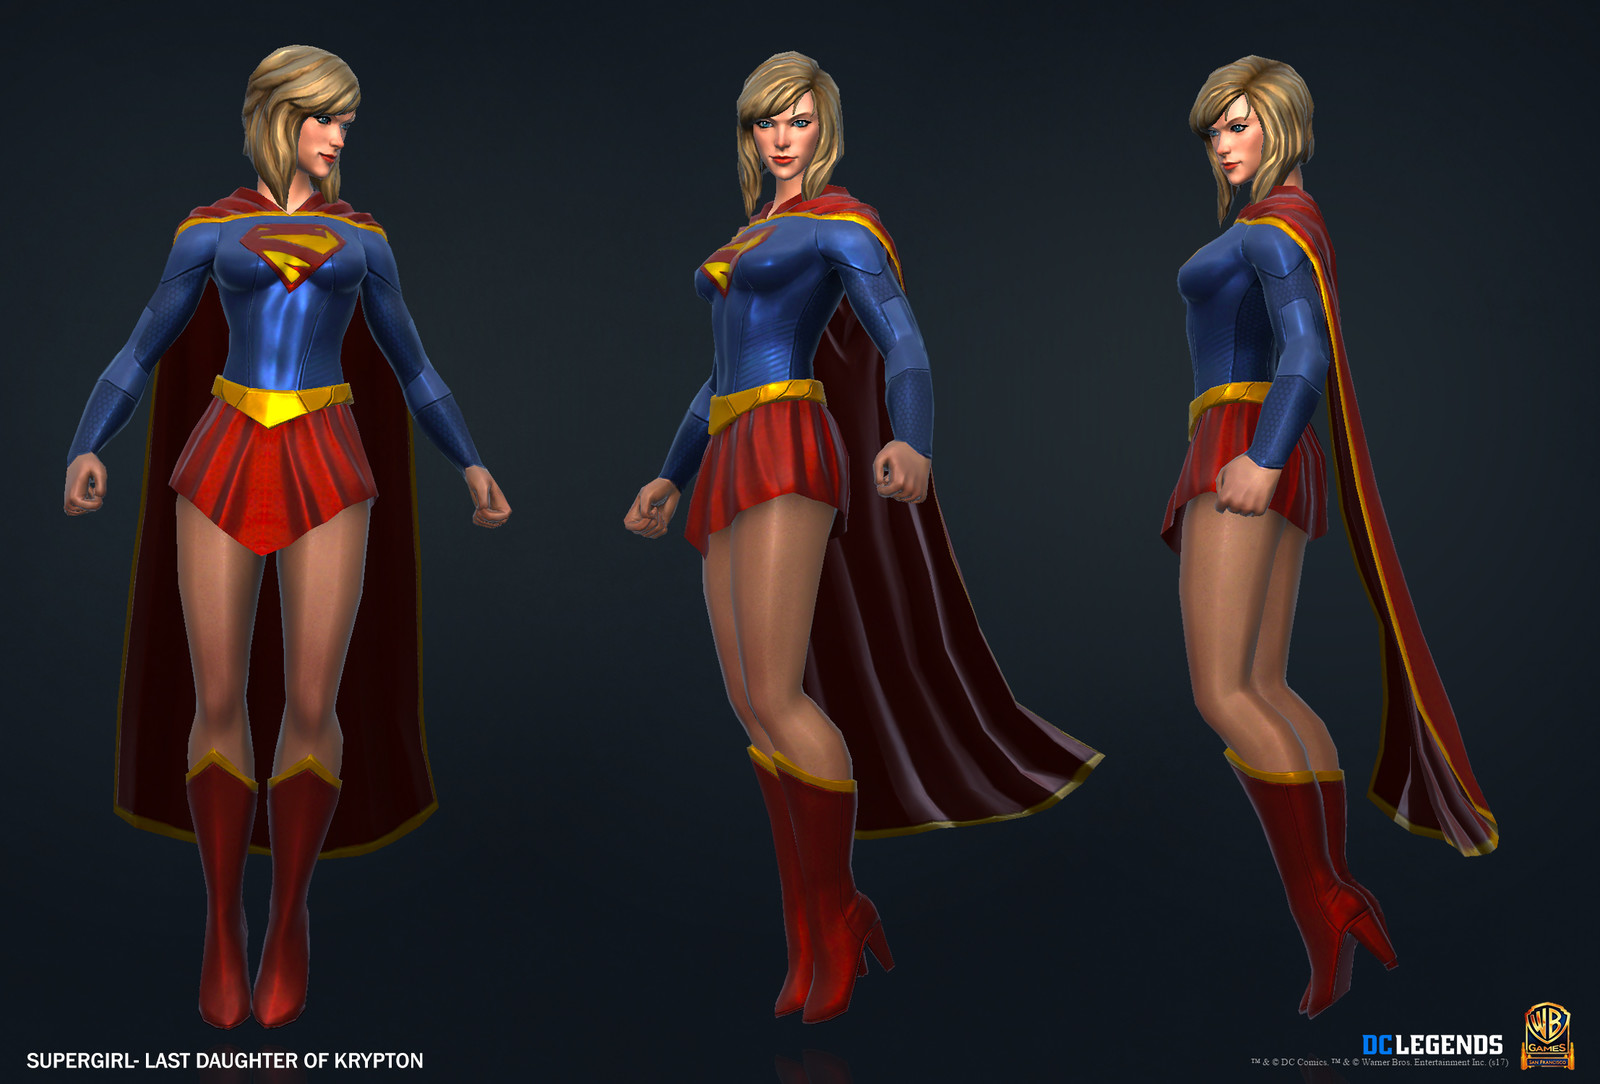 Supergirl Heroic High Poly, Low Poly and Textures/Material work done by me. Additional Texture/Material pass done by Josiah Martinez.